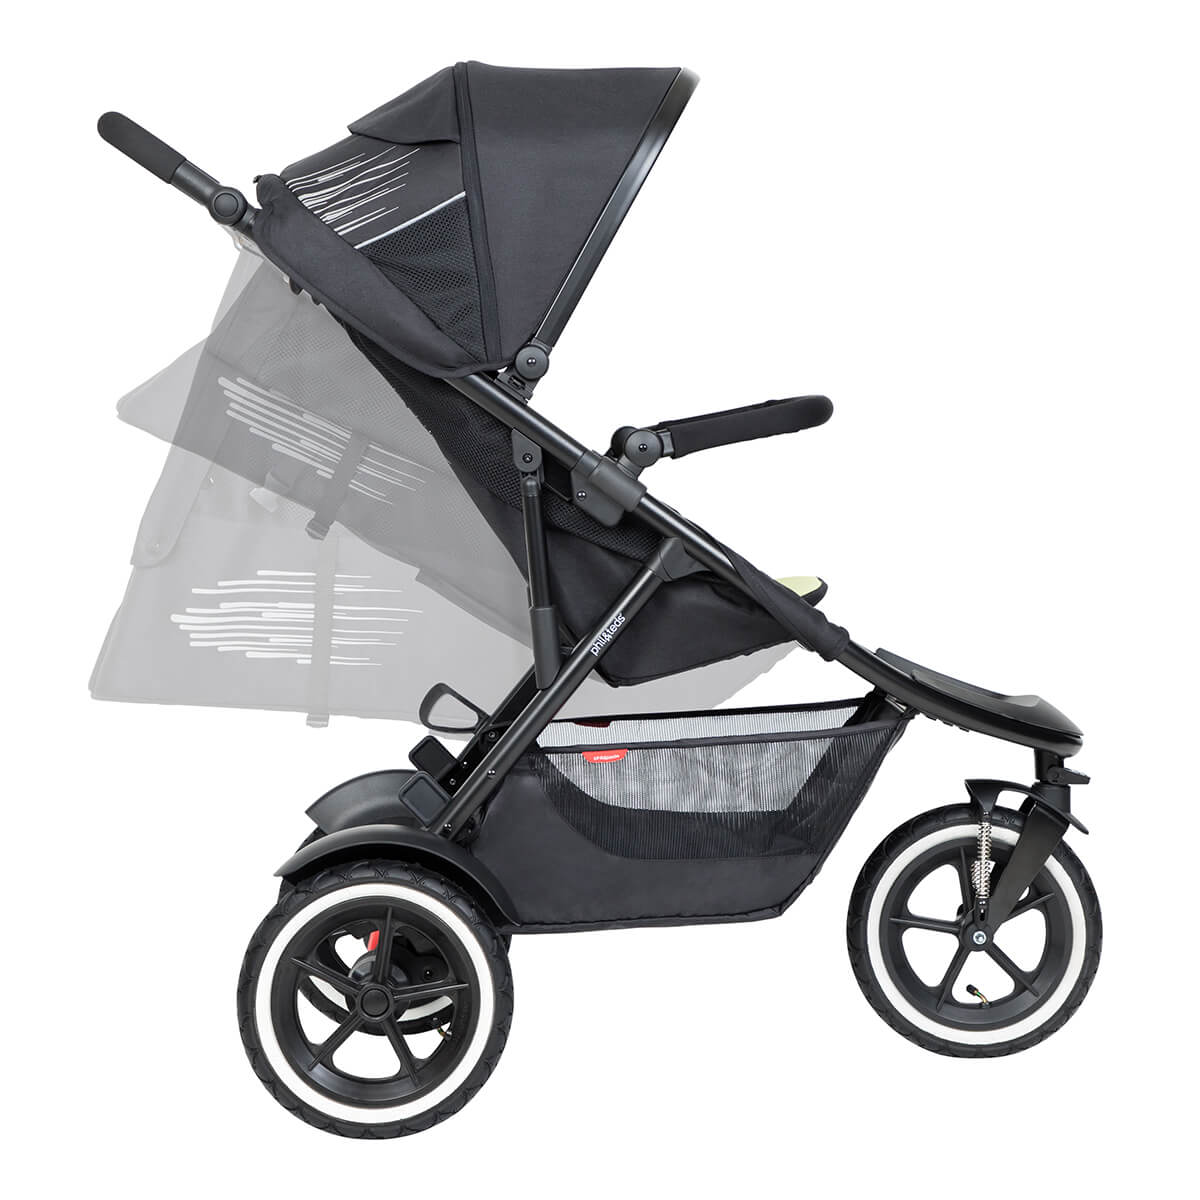 https://cdn.accentuate.io/4546157314153/19119322628201/philteds-sport-buggy-can-recline-in-multiple-angles-including-full-recline-for-newborn-baby-v1625778161757.jpg?1200x1200